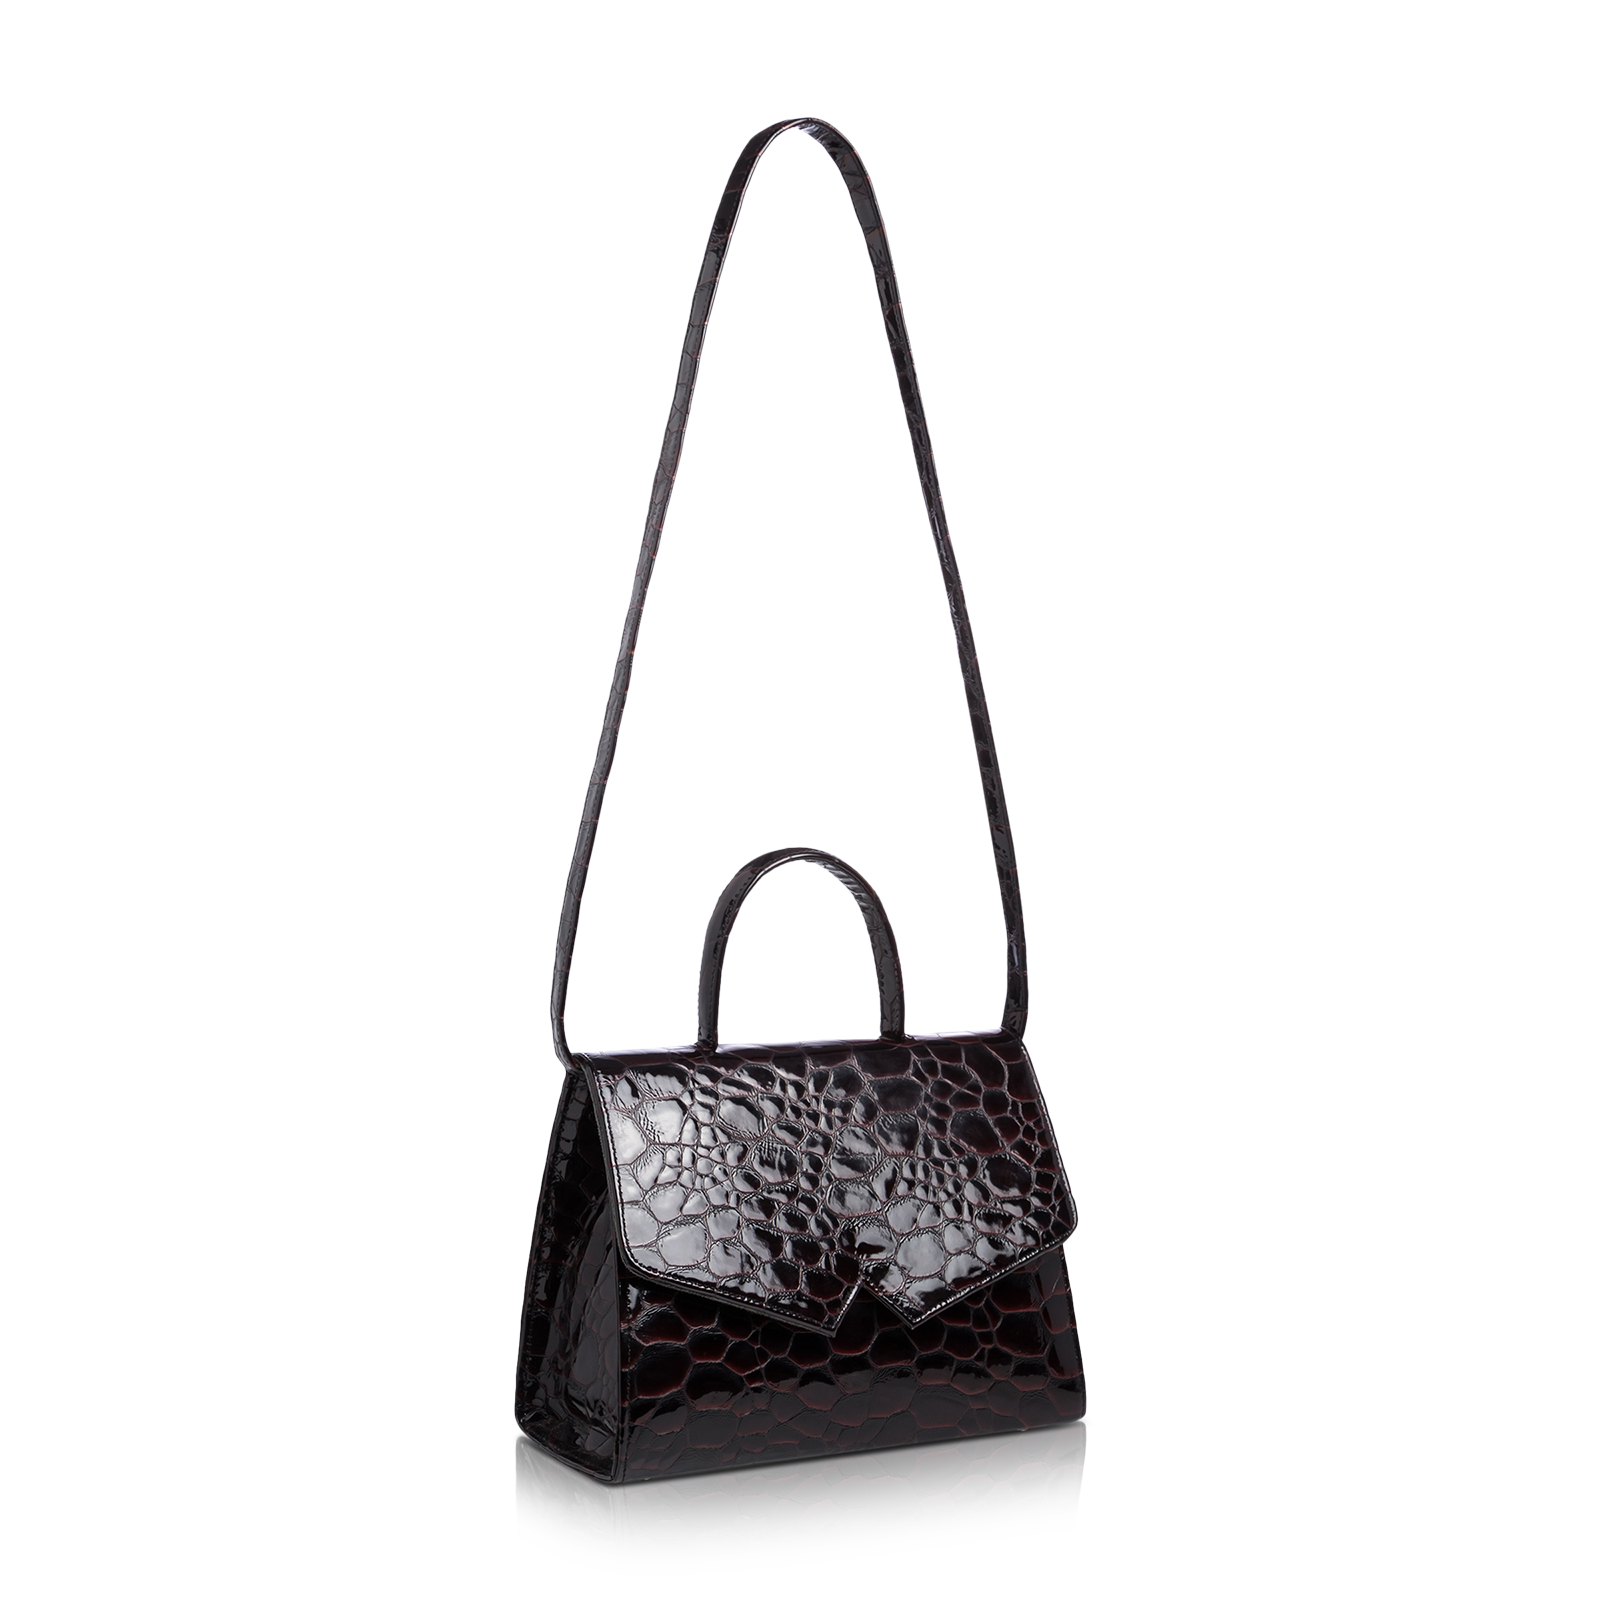 Bag product image